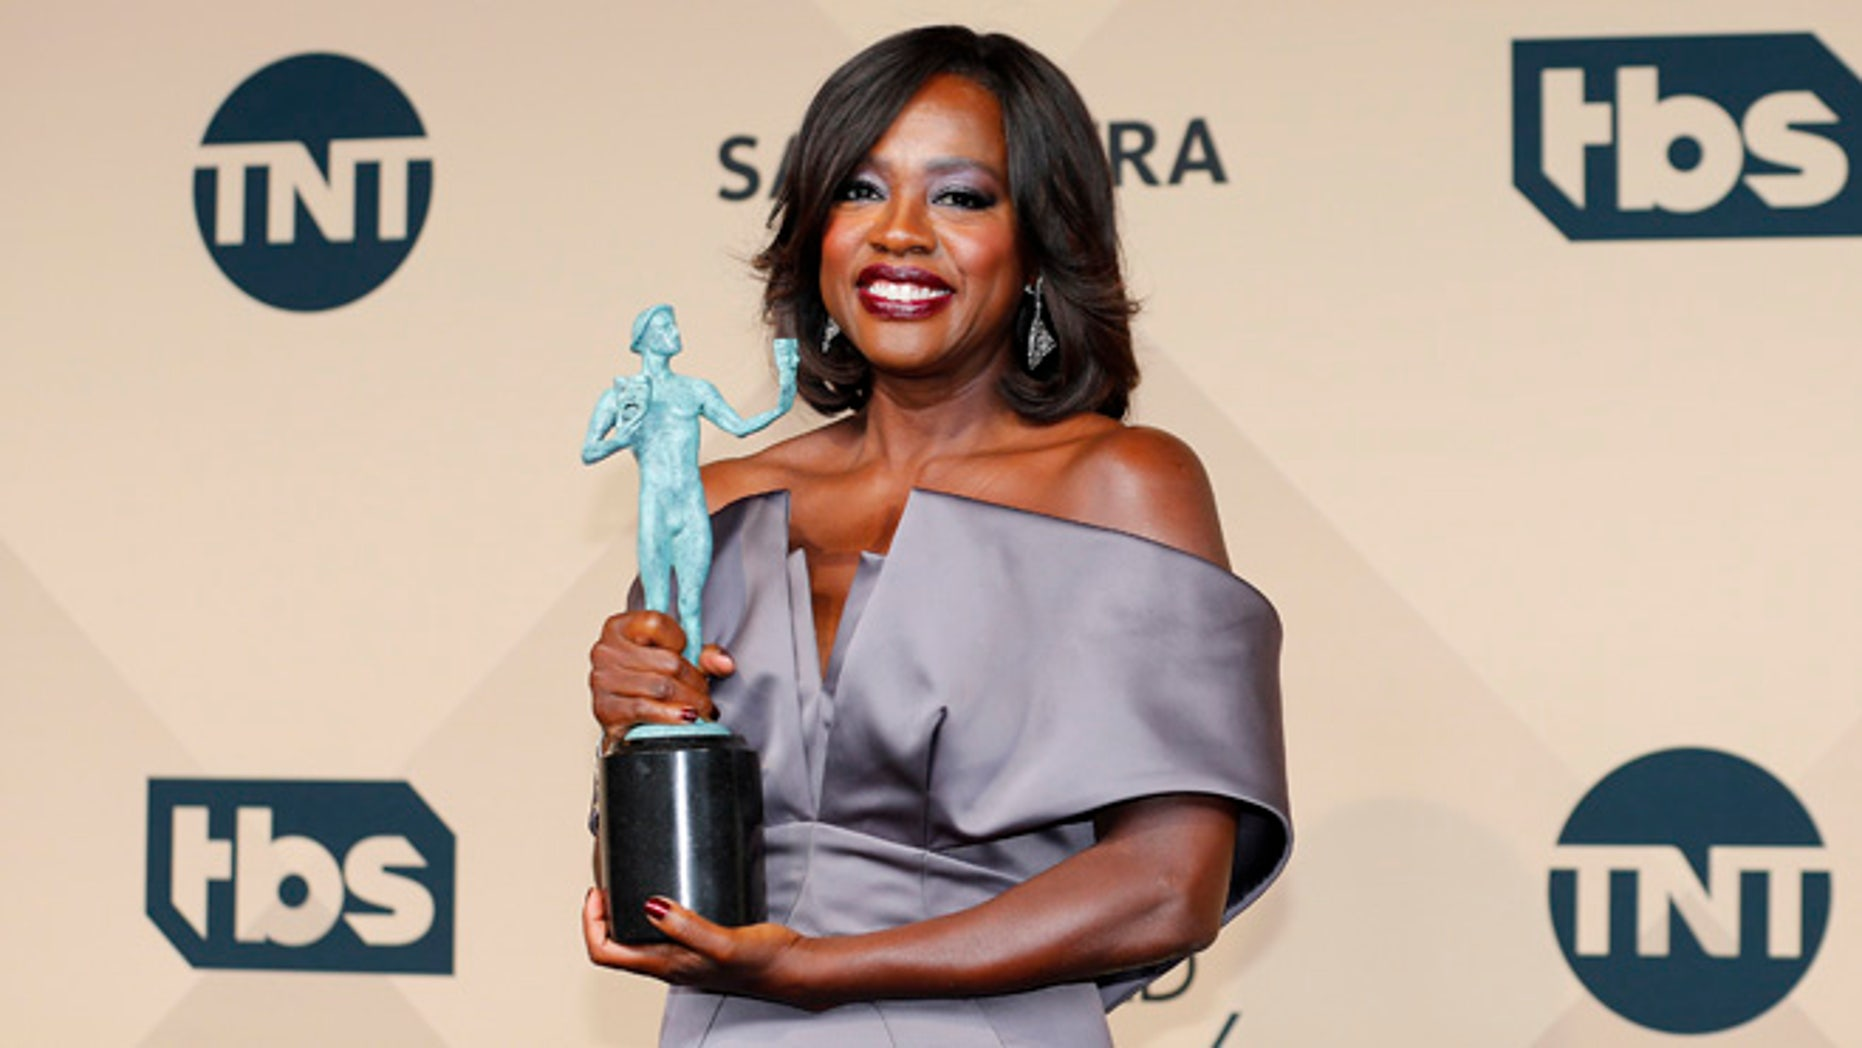 """January 30, 2016. Viola Davis holds the award for Outstanding Performance by a Female Actor in a Drama Series for her role in """"How to Get Away With Murder"""" during the 22nd Screen Actors Guild Awards in Los Angeles."""